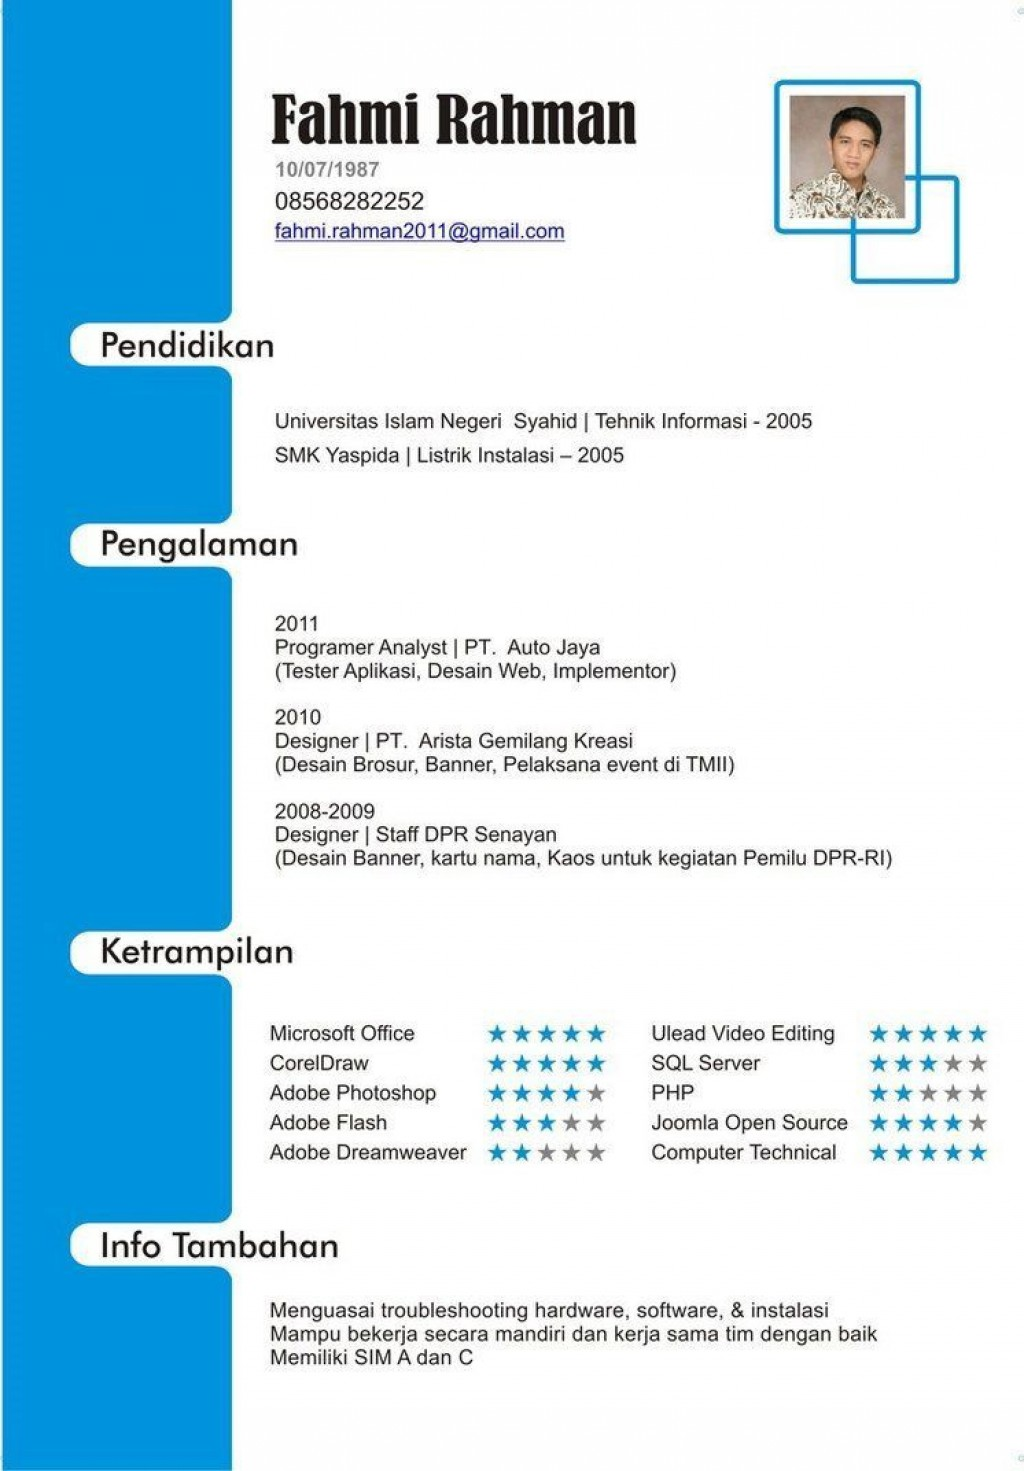 002 Impressive Resume Template On Word Highest Quality  Free Download Australia Microsoft Office 2007 PhilippineLarge